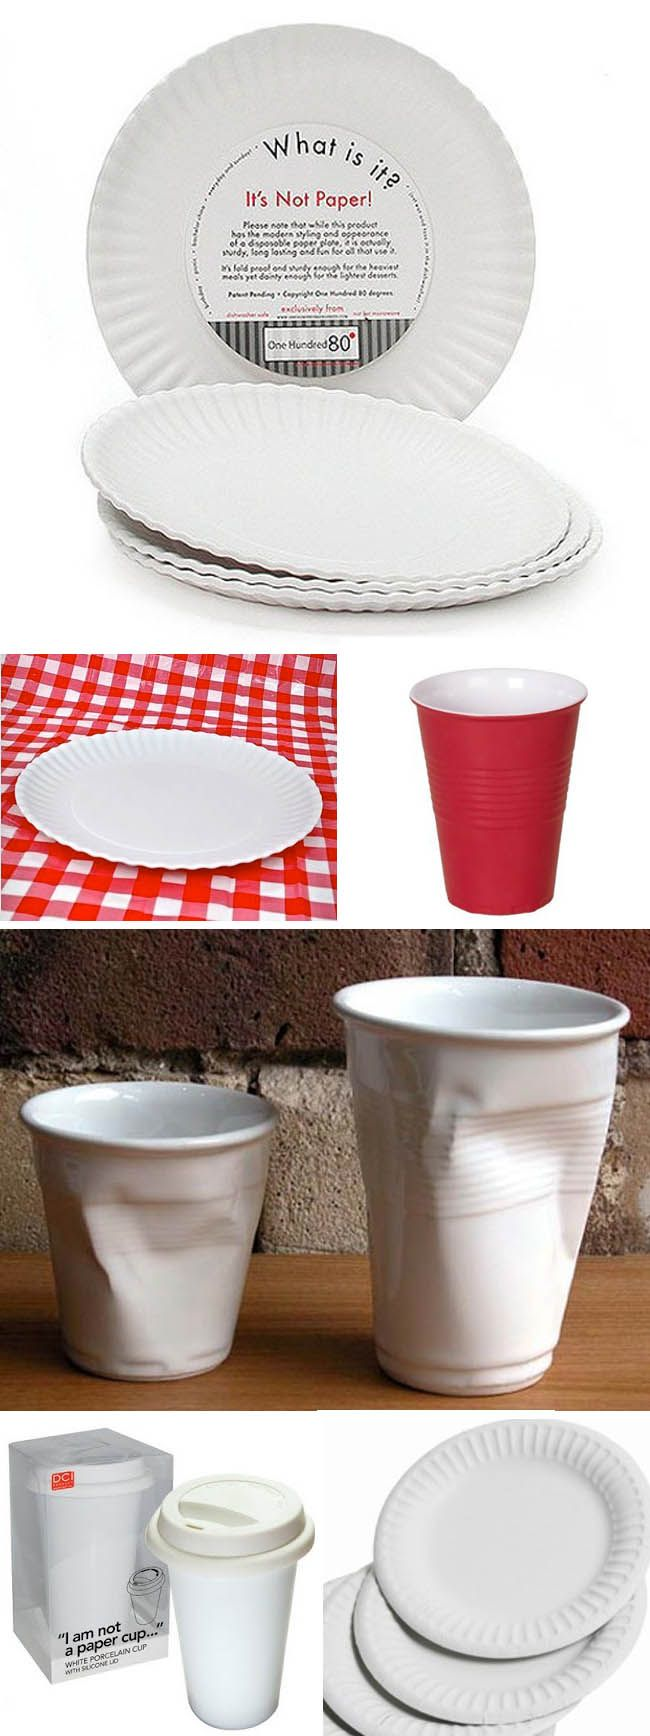 Paper plates and cups made in melamime and porcelain